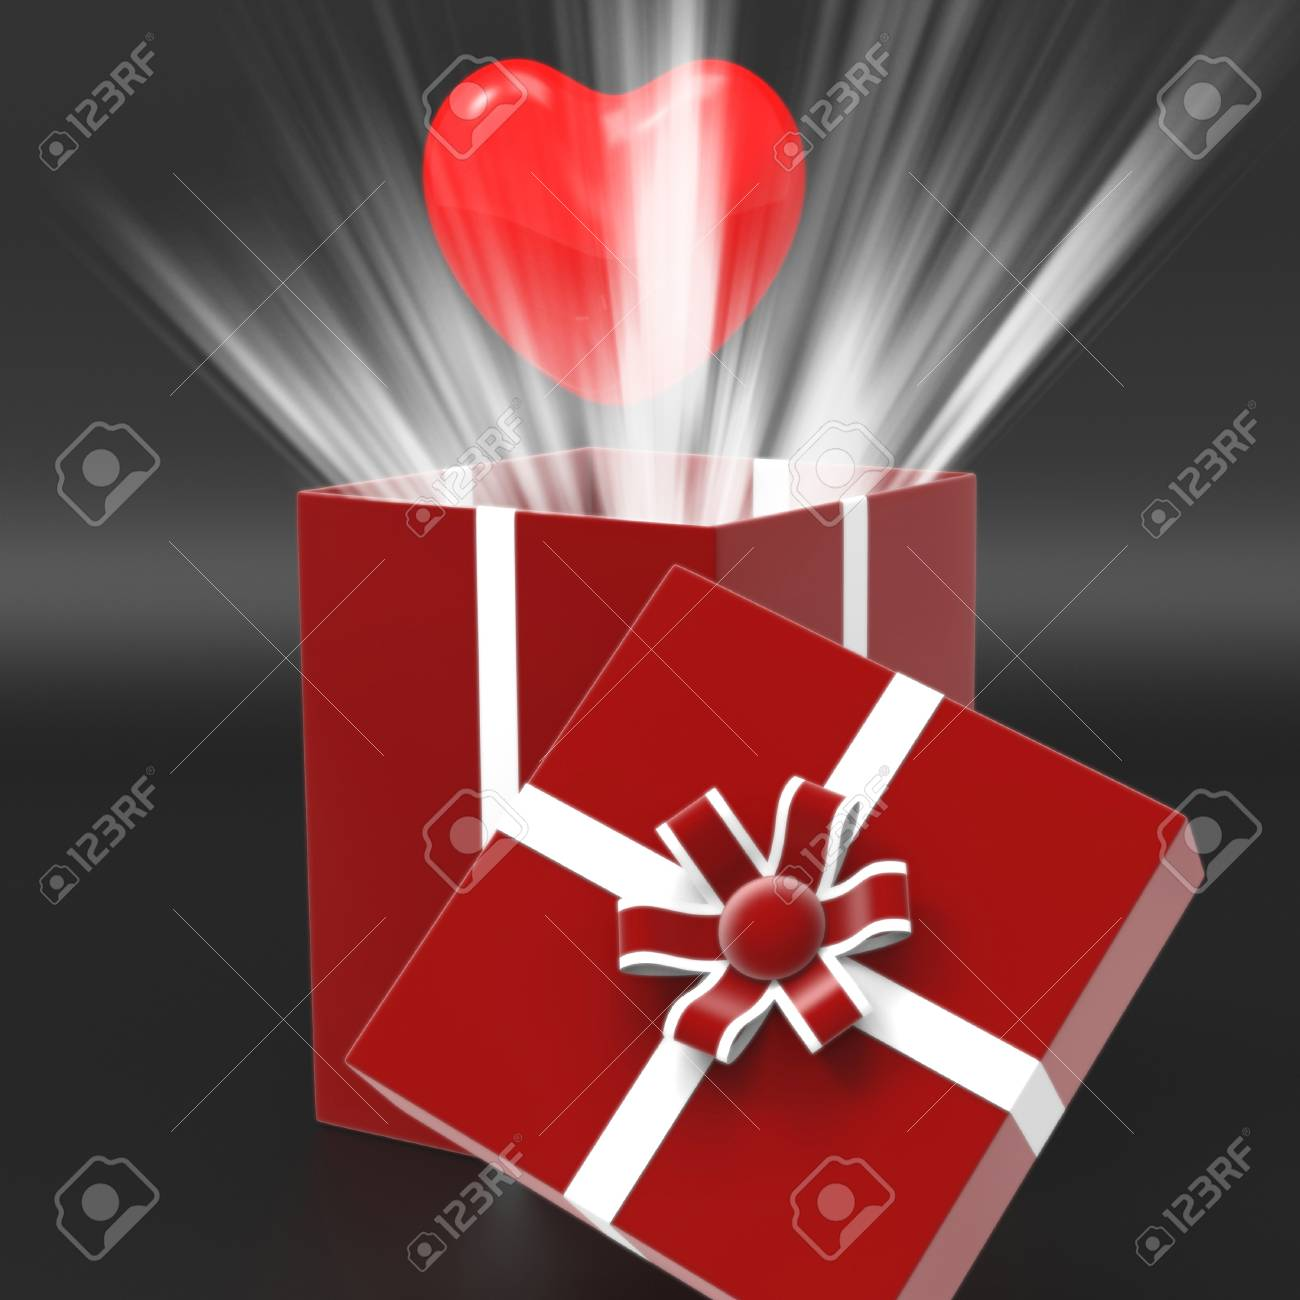 Giftbox Heart Meaning Valentine Day And Present Stock Photo Picture